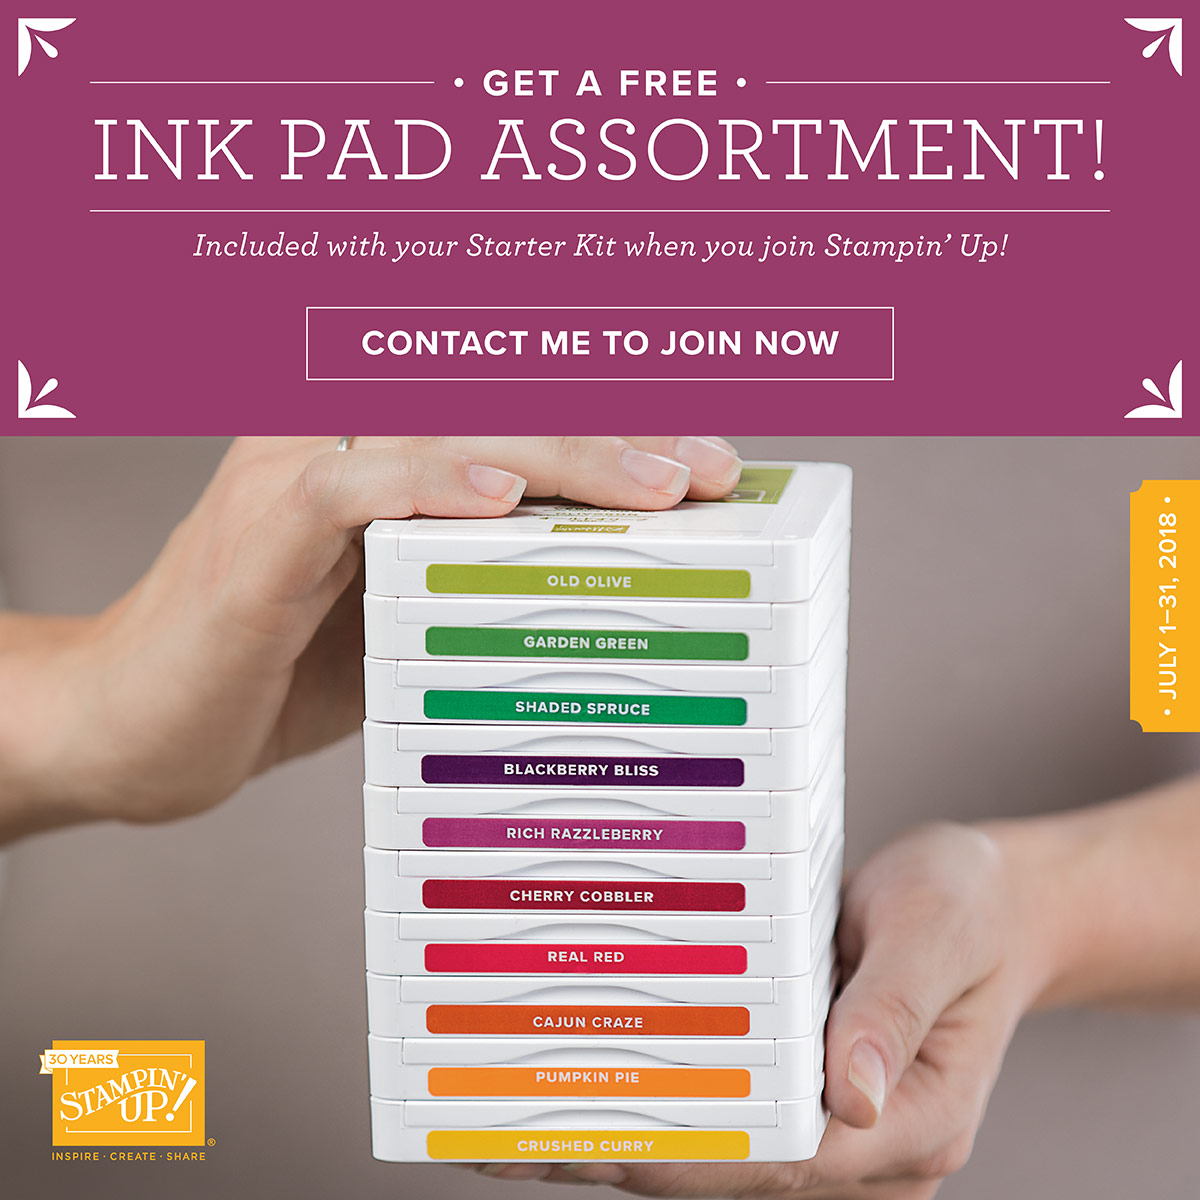 Buy the $99 Starter Kit in July, and get $125 in products of your choice, plus an Ink Pad Color Family assortment (10 ink pads)!